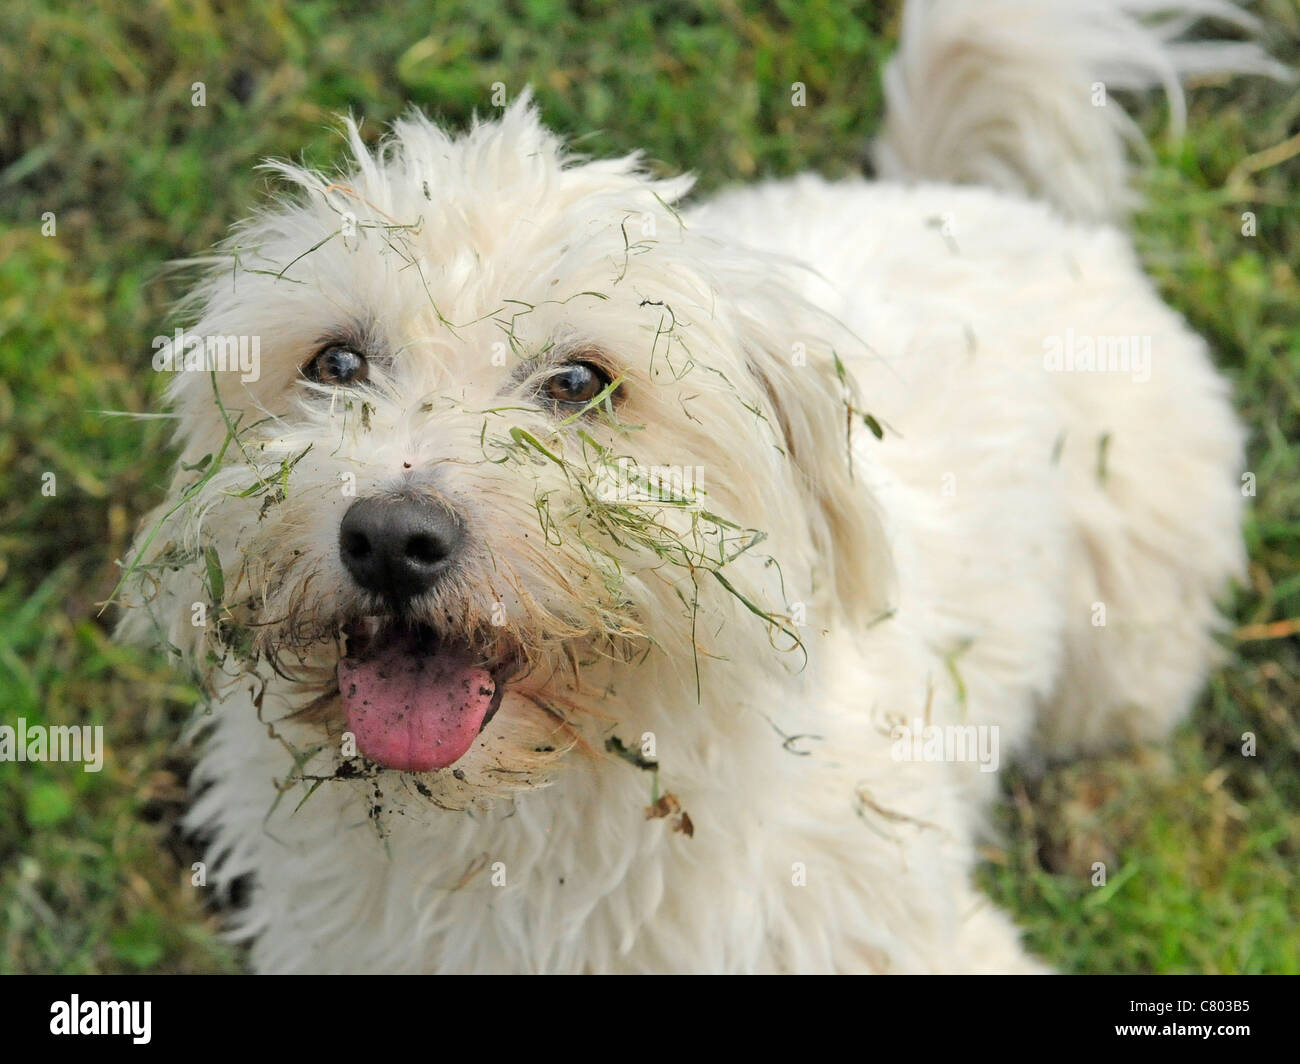 A white bichon frise with a muddy face - Stock Image